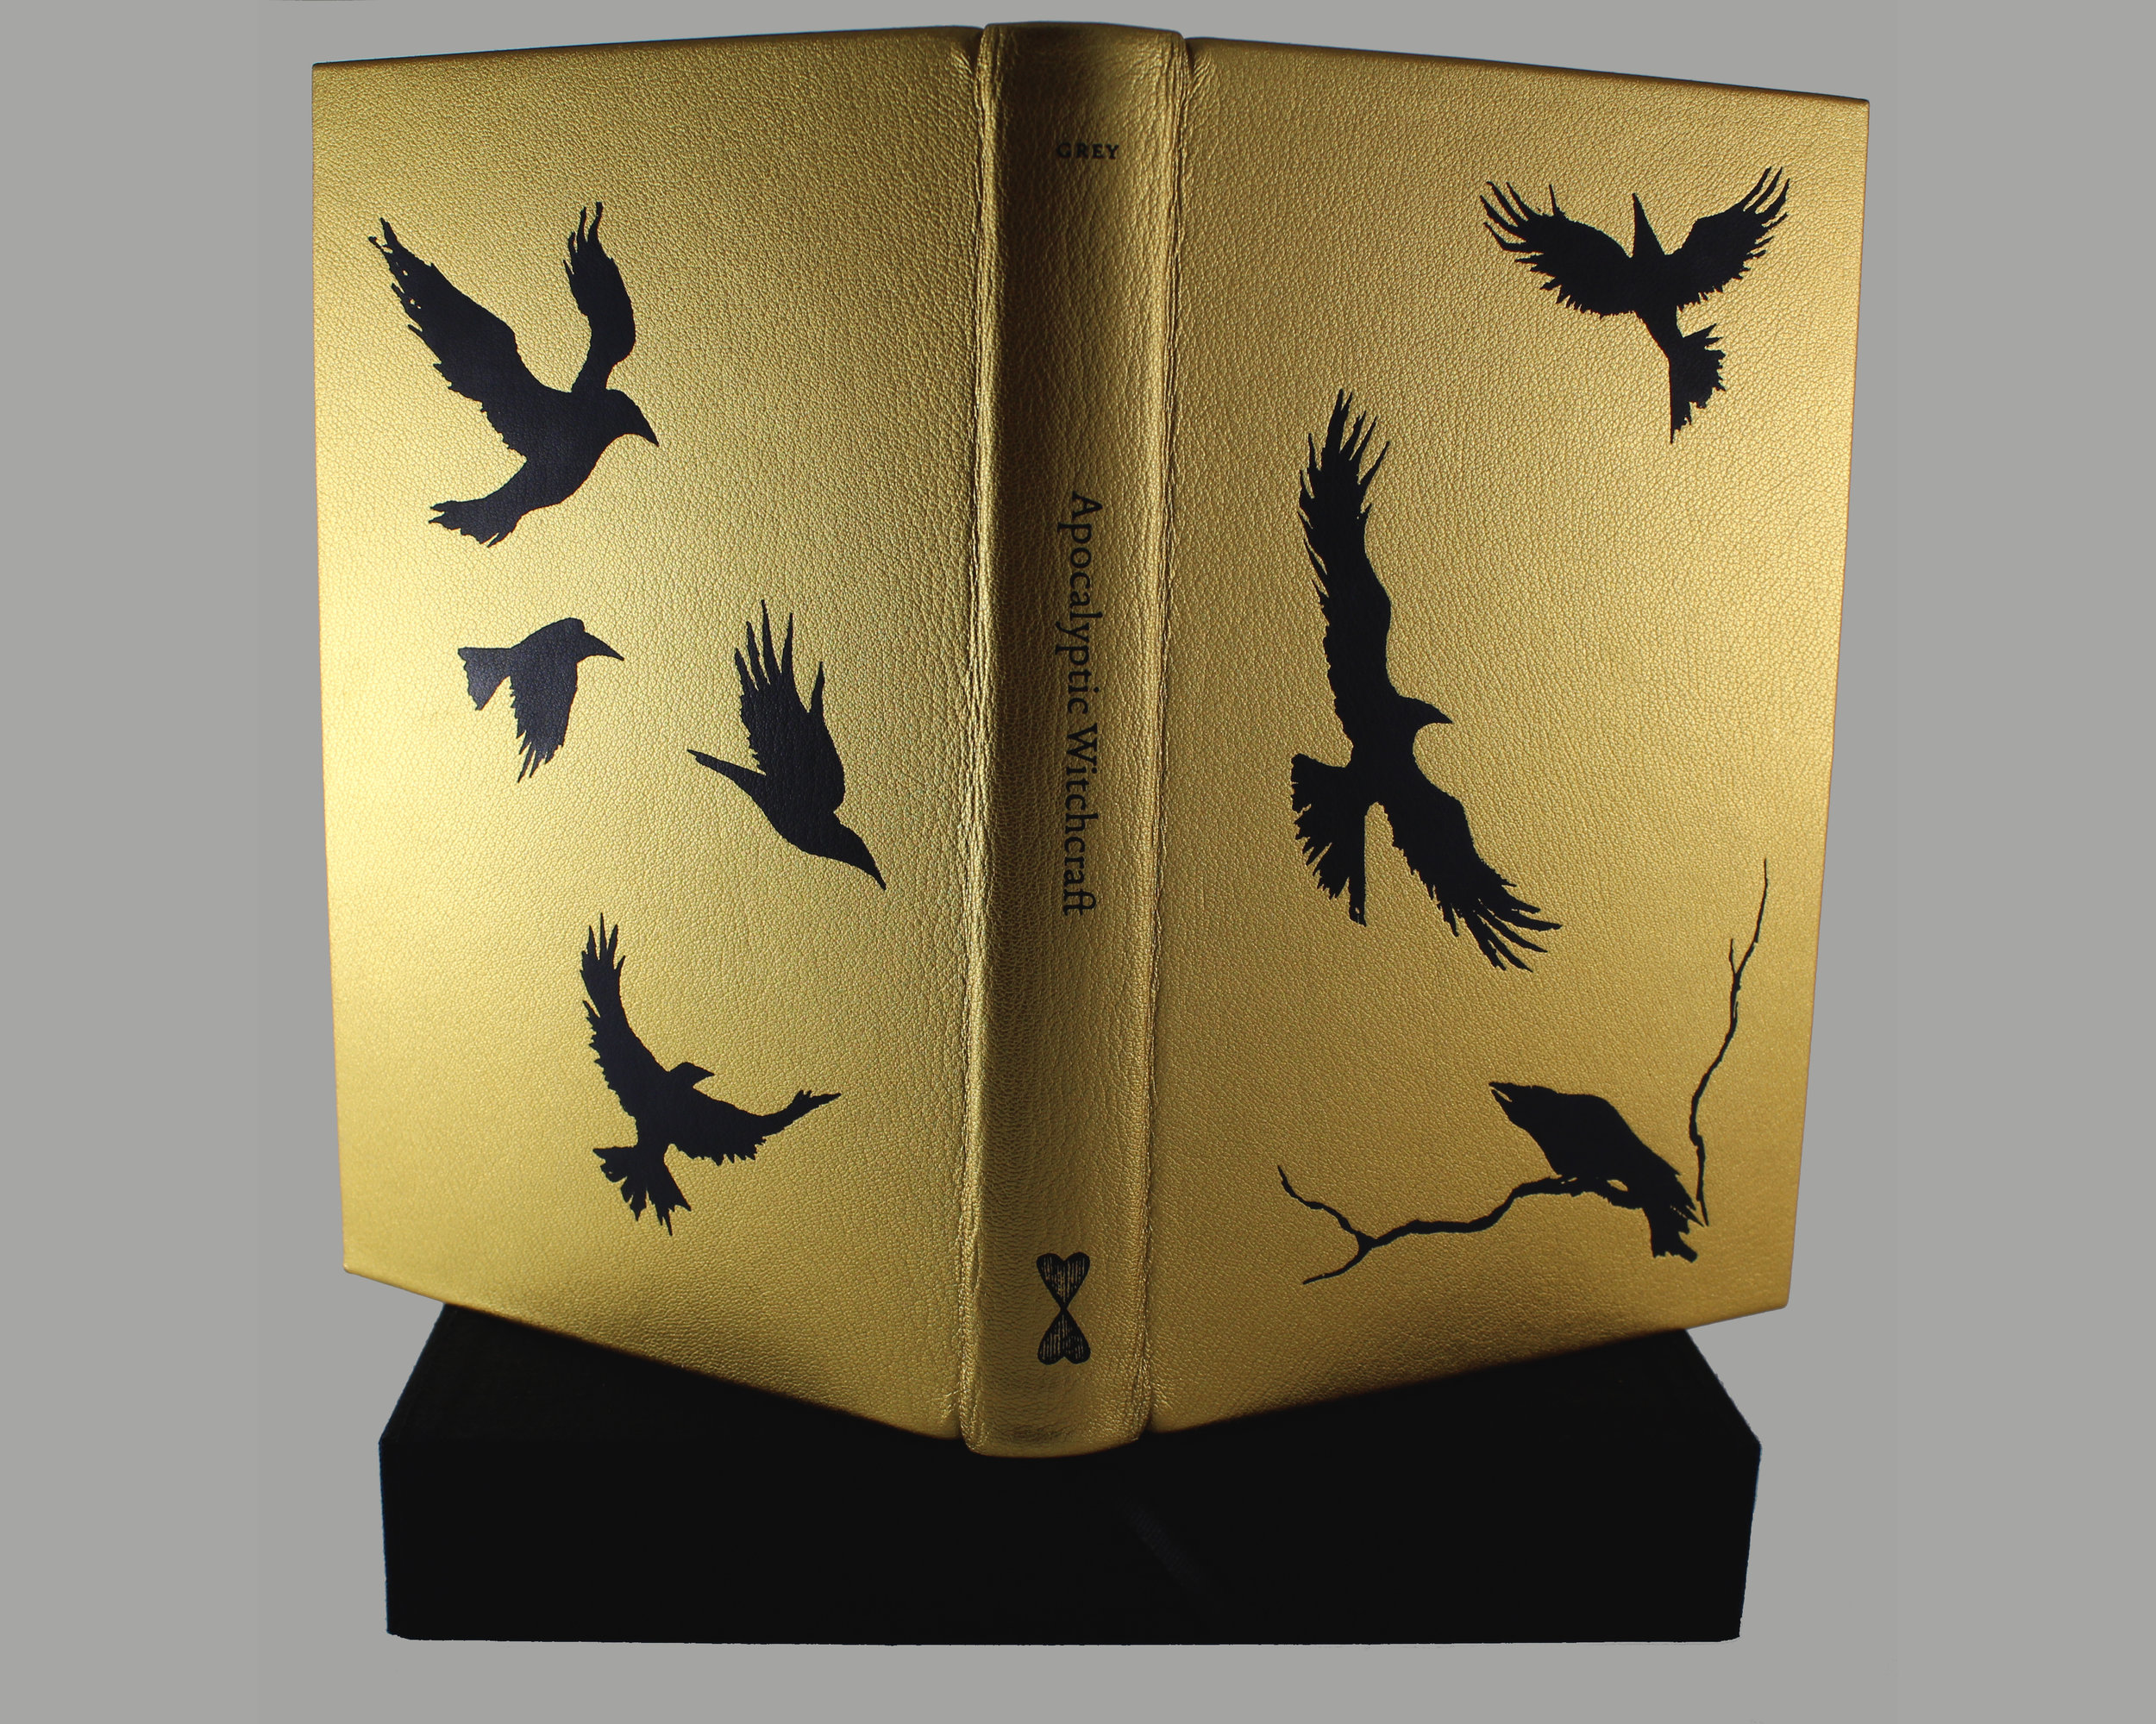 Fine edition bound in full gold hand-grained morocco stamped with a murder of crows